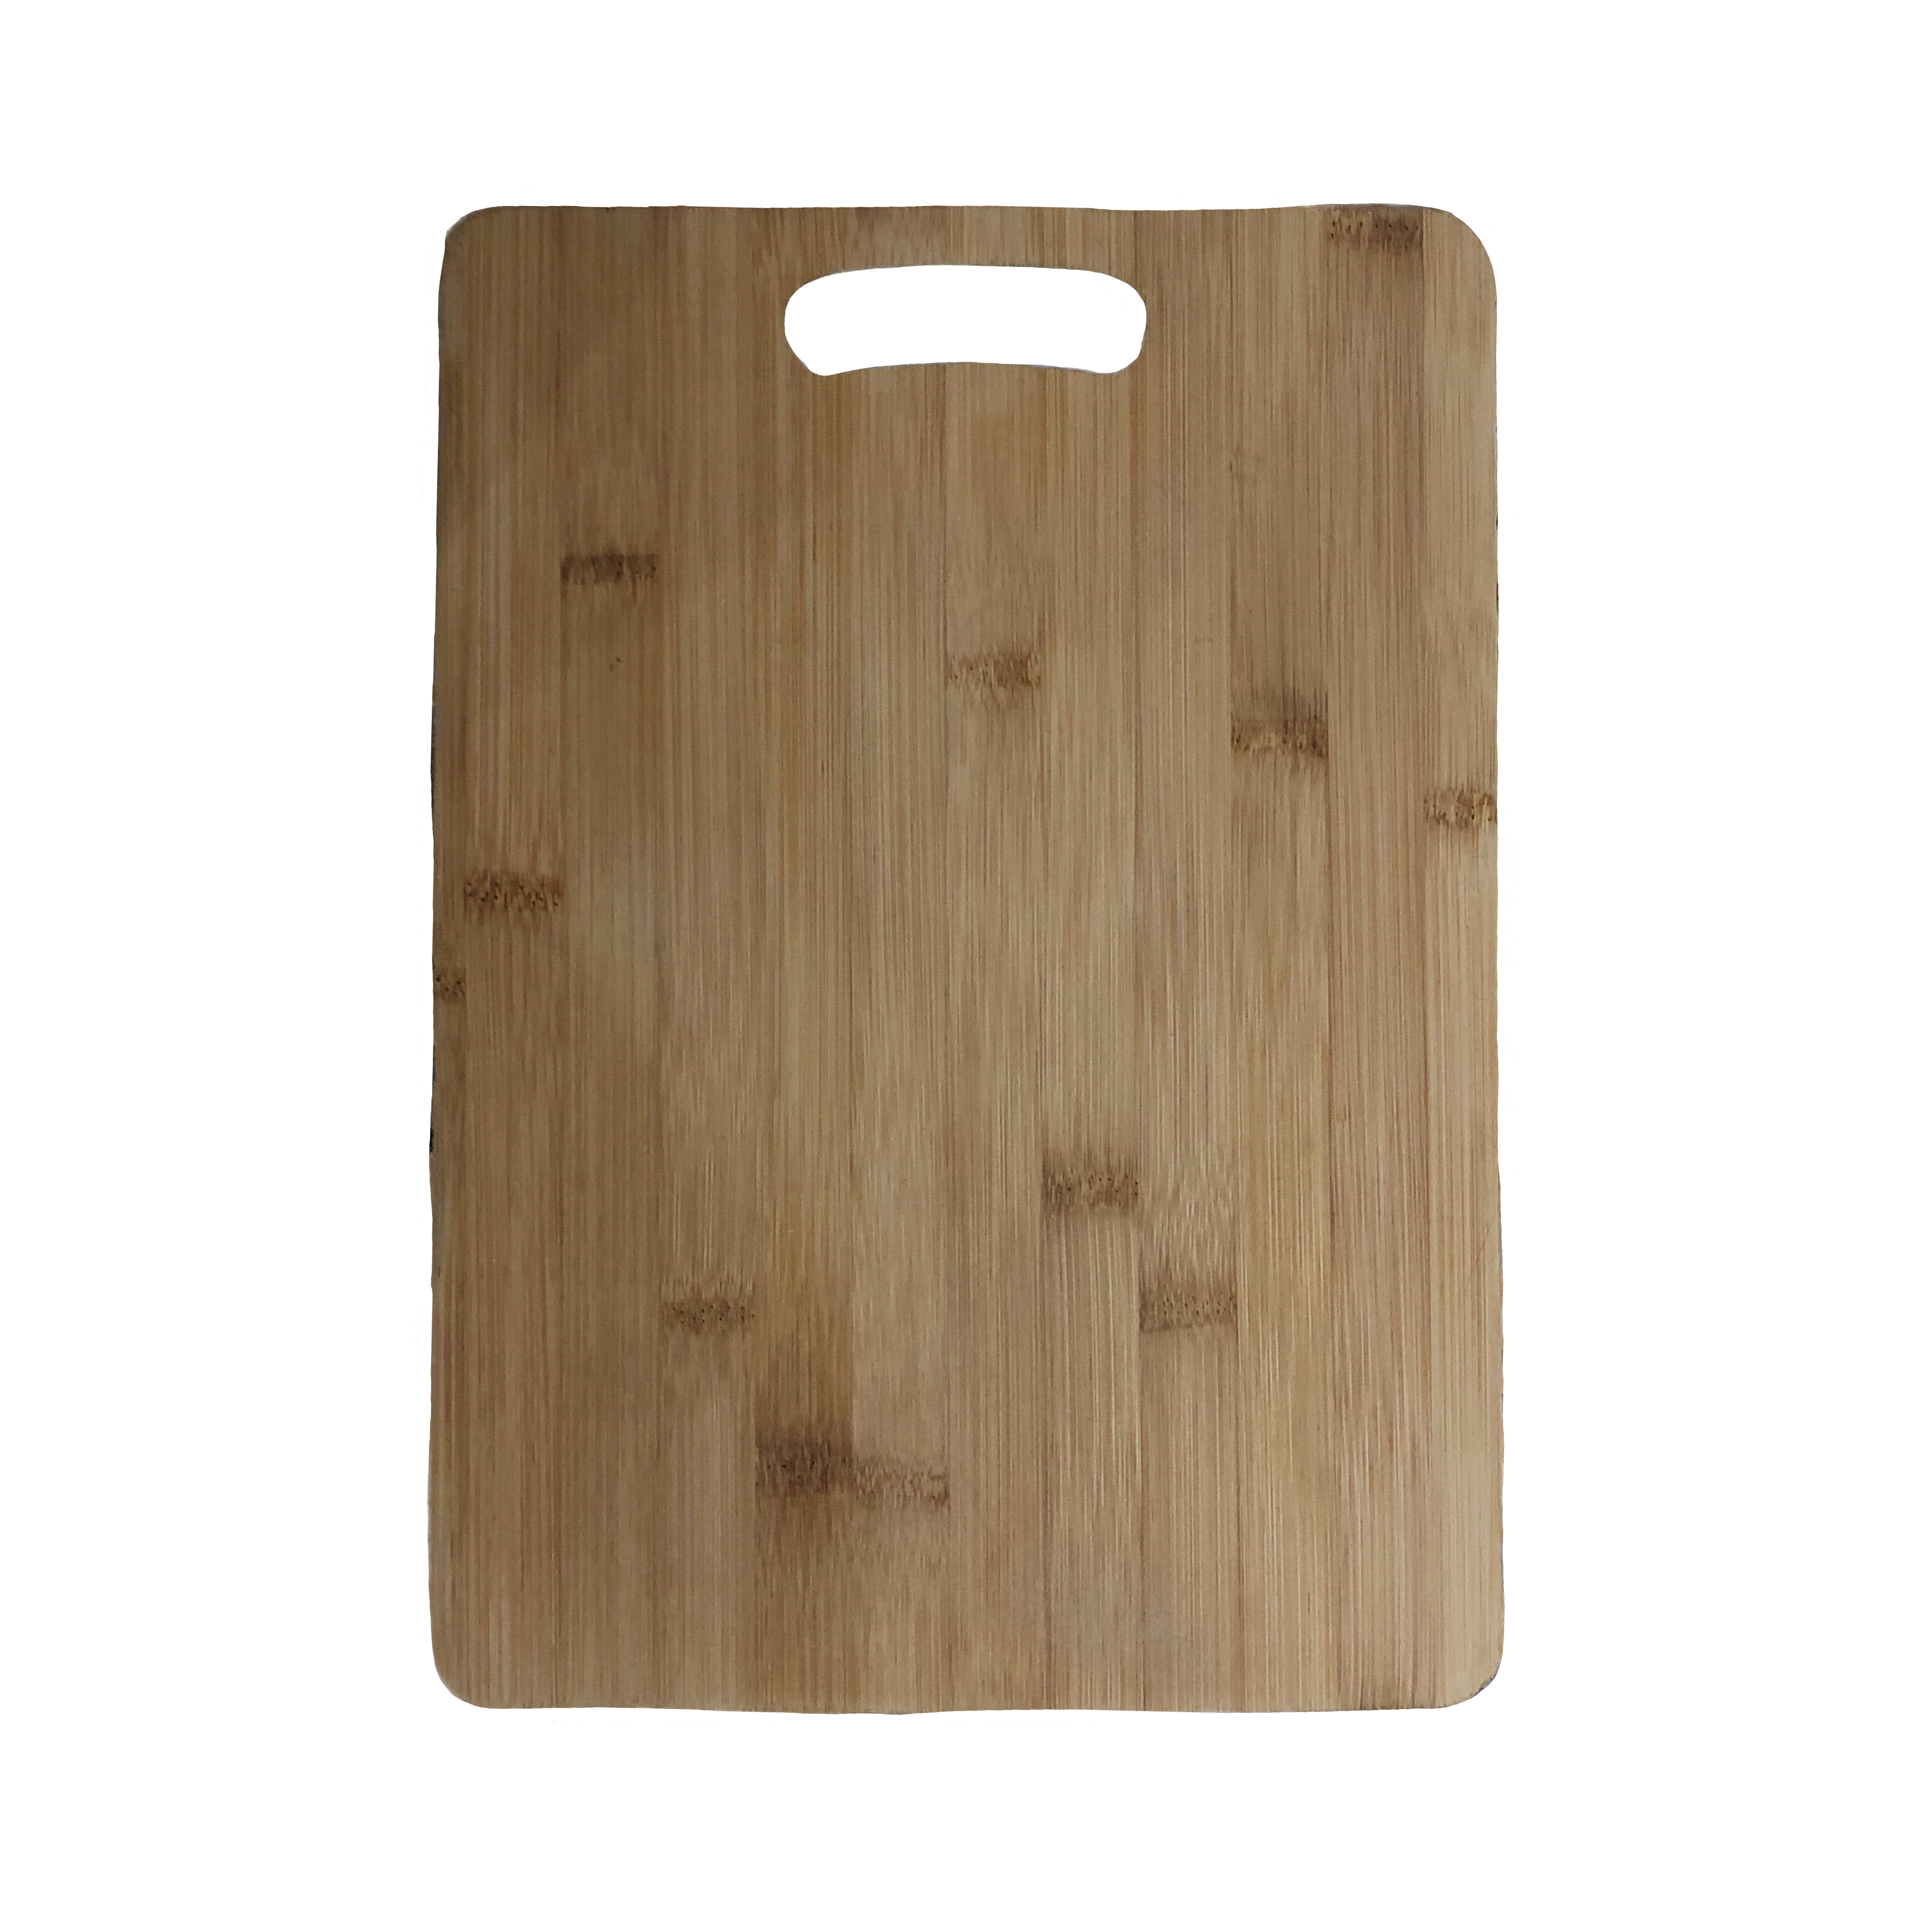 Bamboo bling board